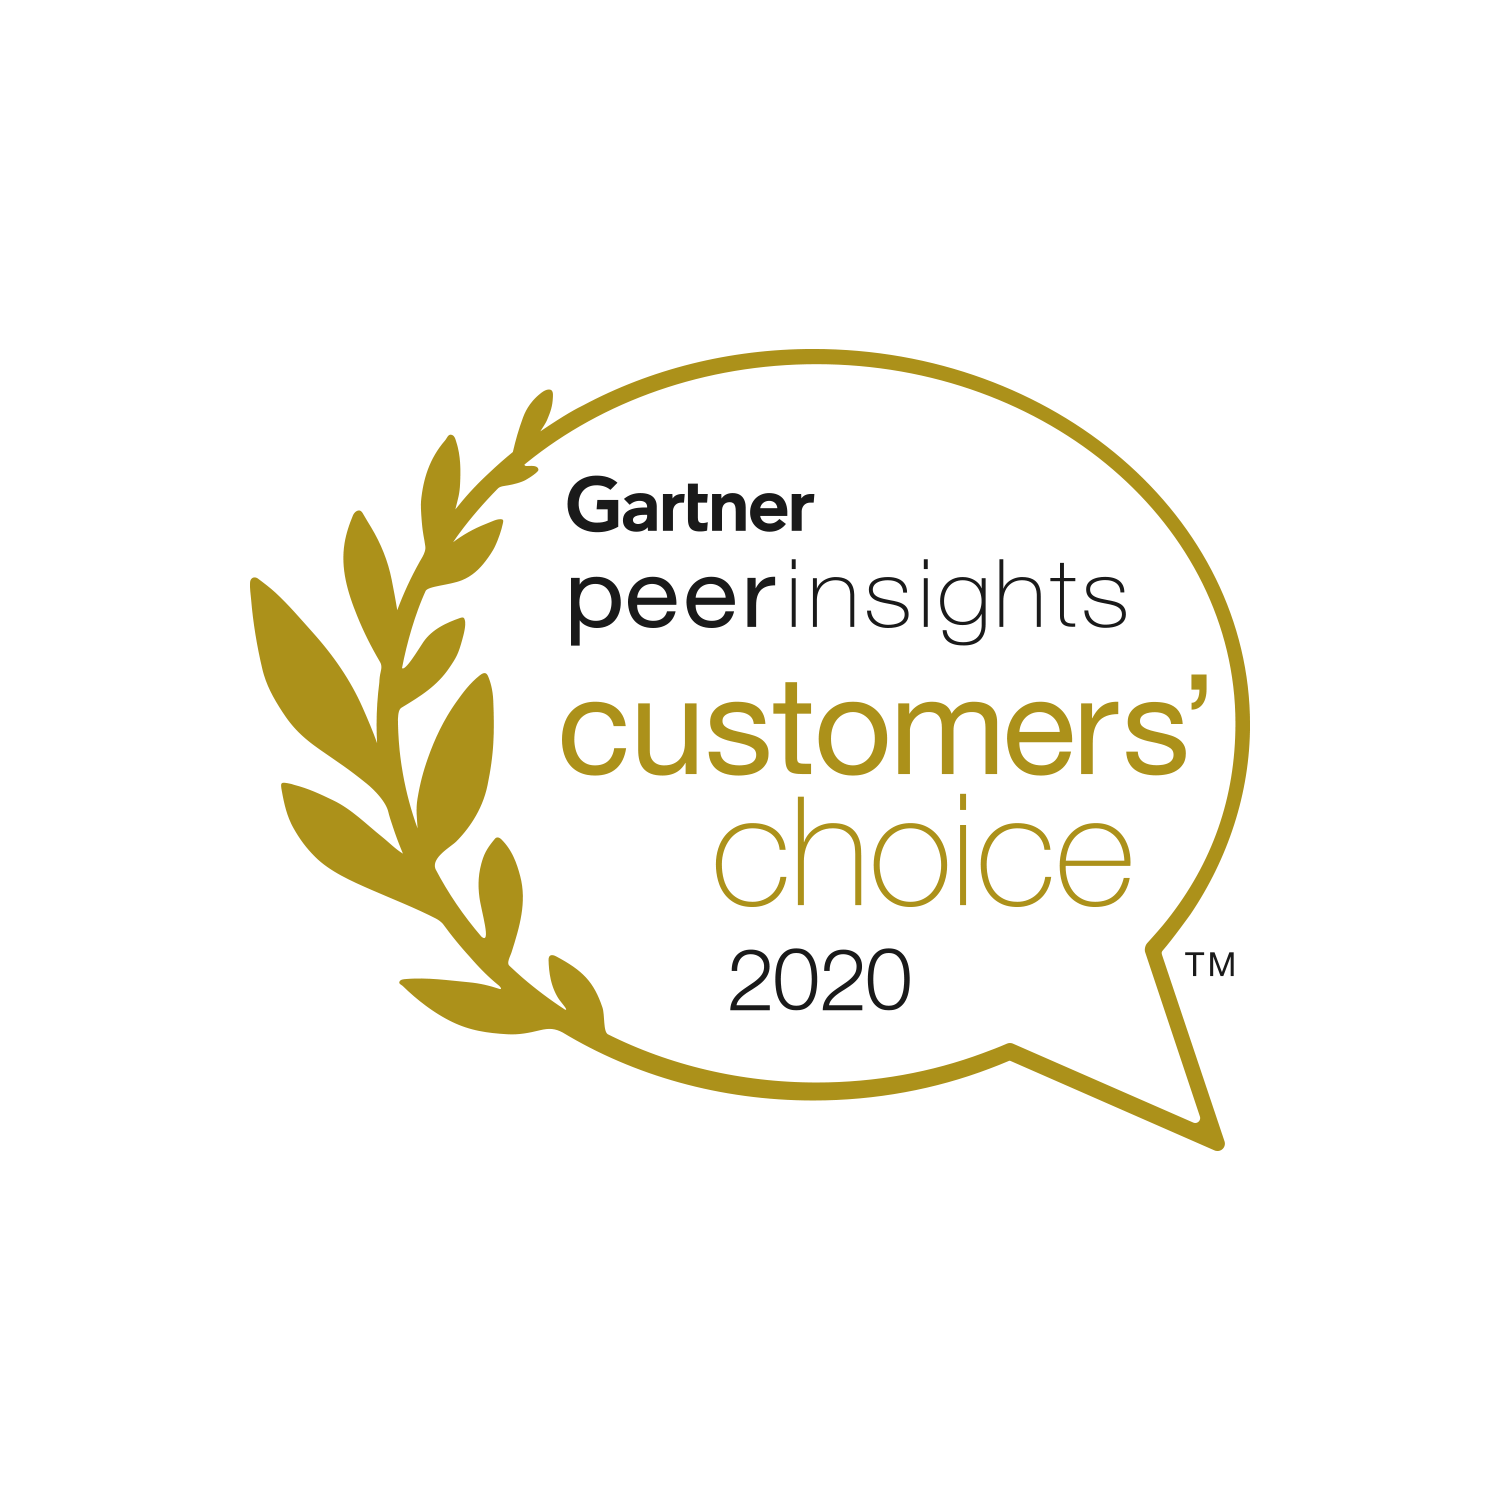 Gartner Peer Insights customers choice 2020 logo